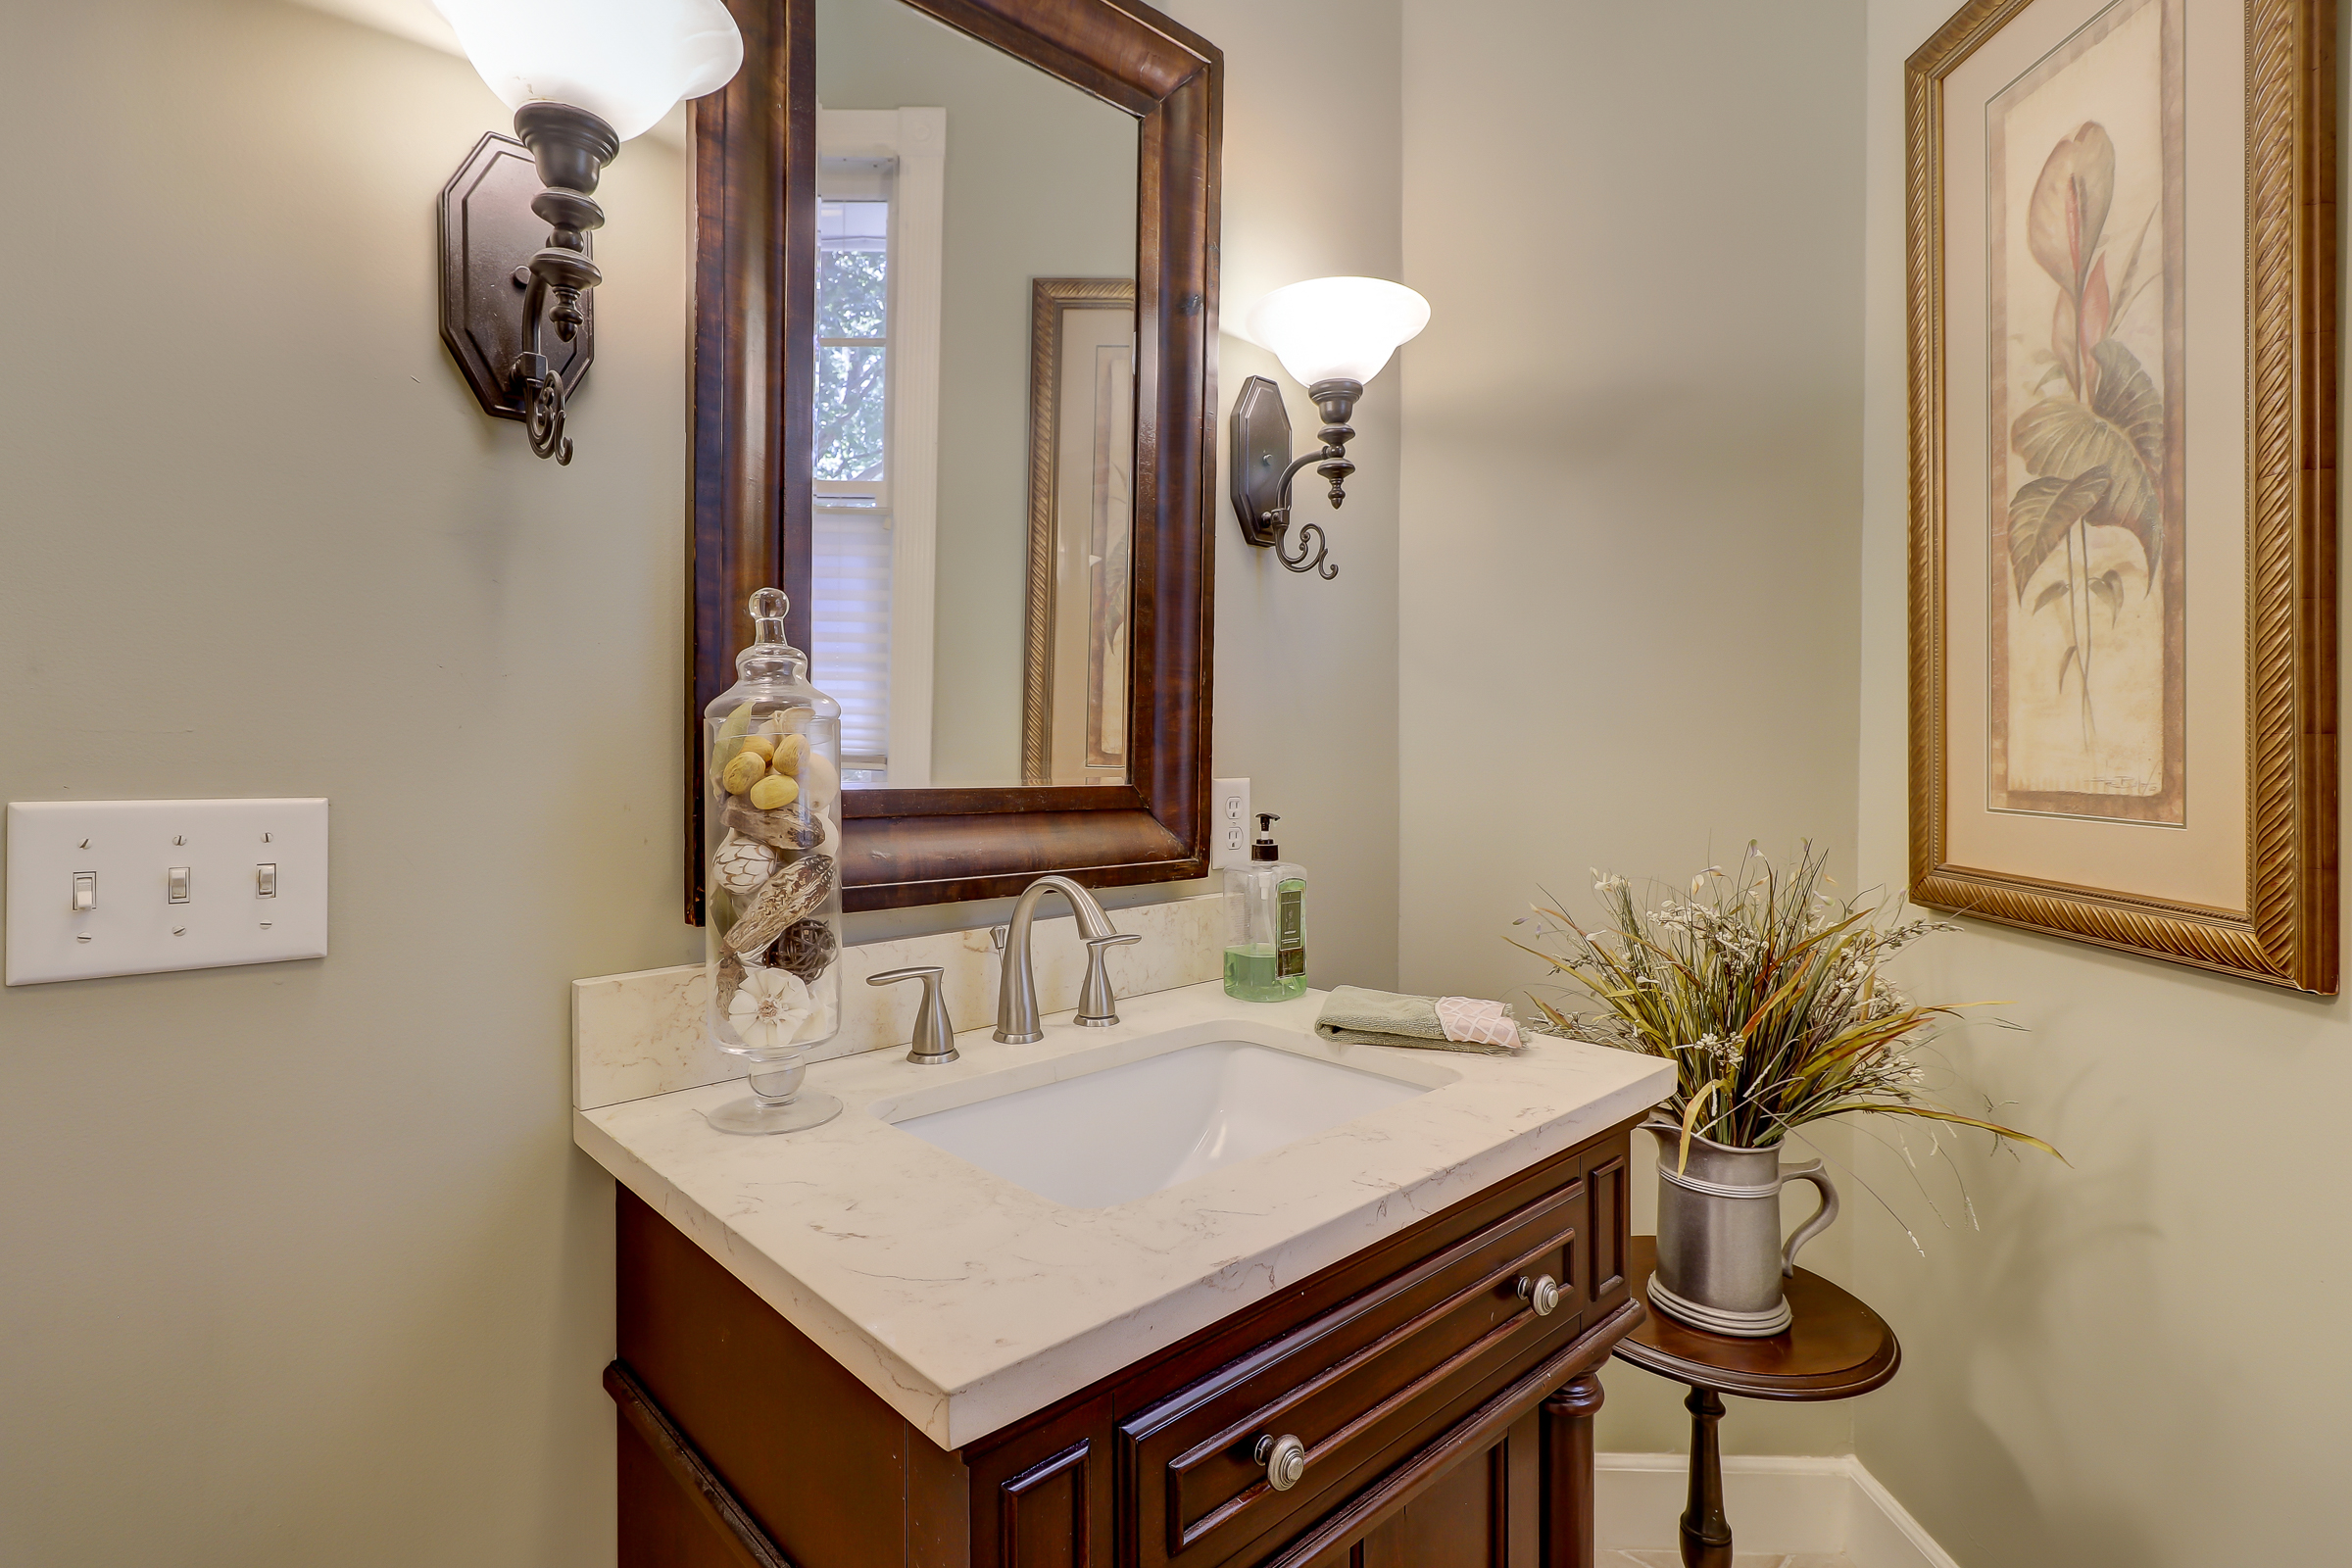 The powder room is in a private location near the kitchen.	 Tastefully finished with a furniture piece vanity, framed mirror and sconce lighting. 314 Fort Howell Dr - Palmetto Hall -  Hilton Head